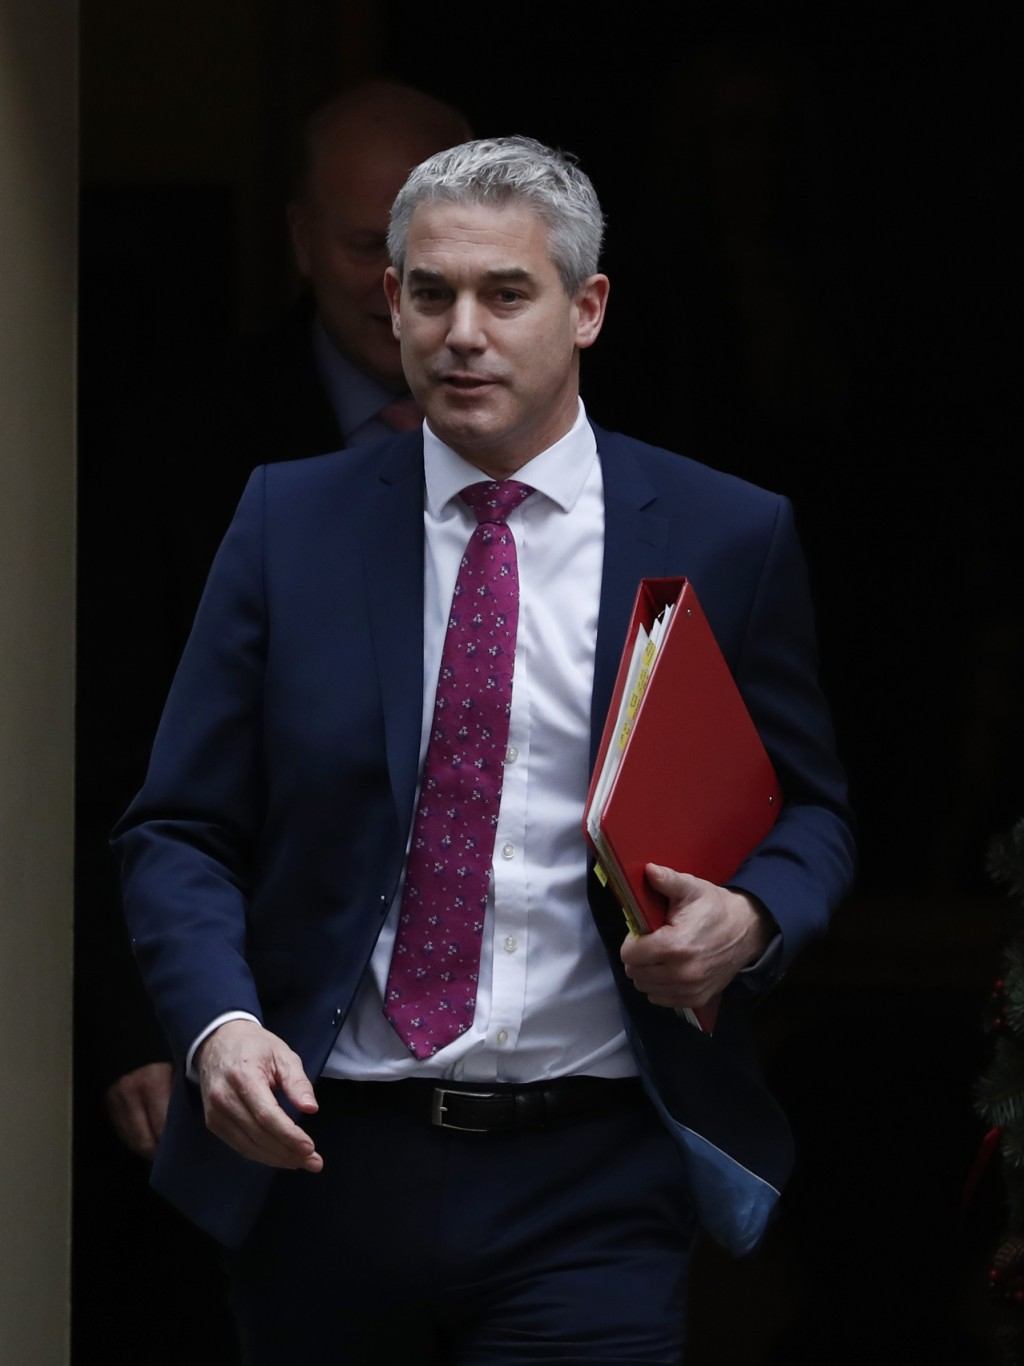 Stephen Barclay the Secretary of State for leaving the EU, walks out of 10 Downing Street, following a cabinet meeting in London Tuesday, Dec. 18, 201...